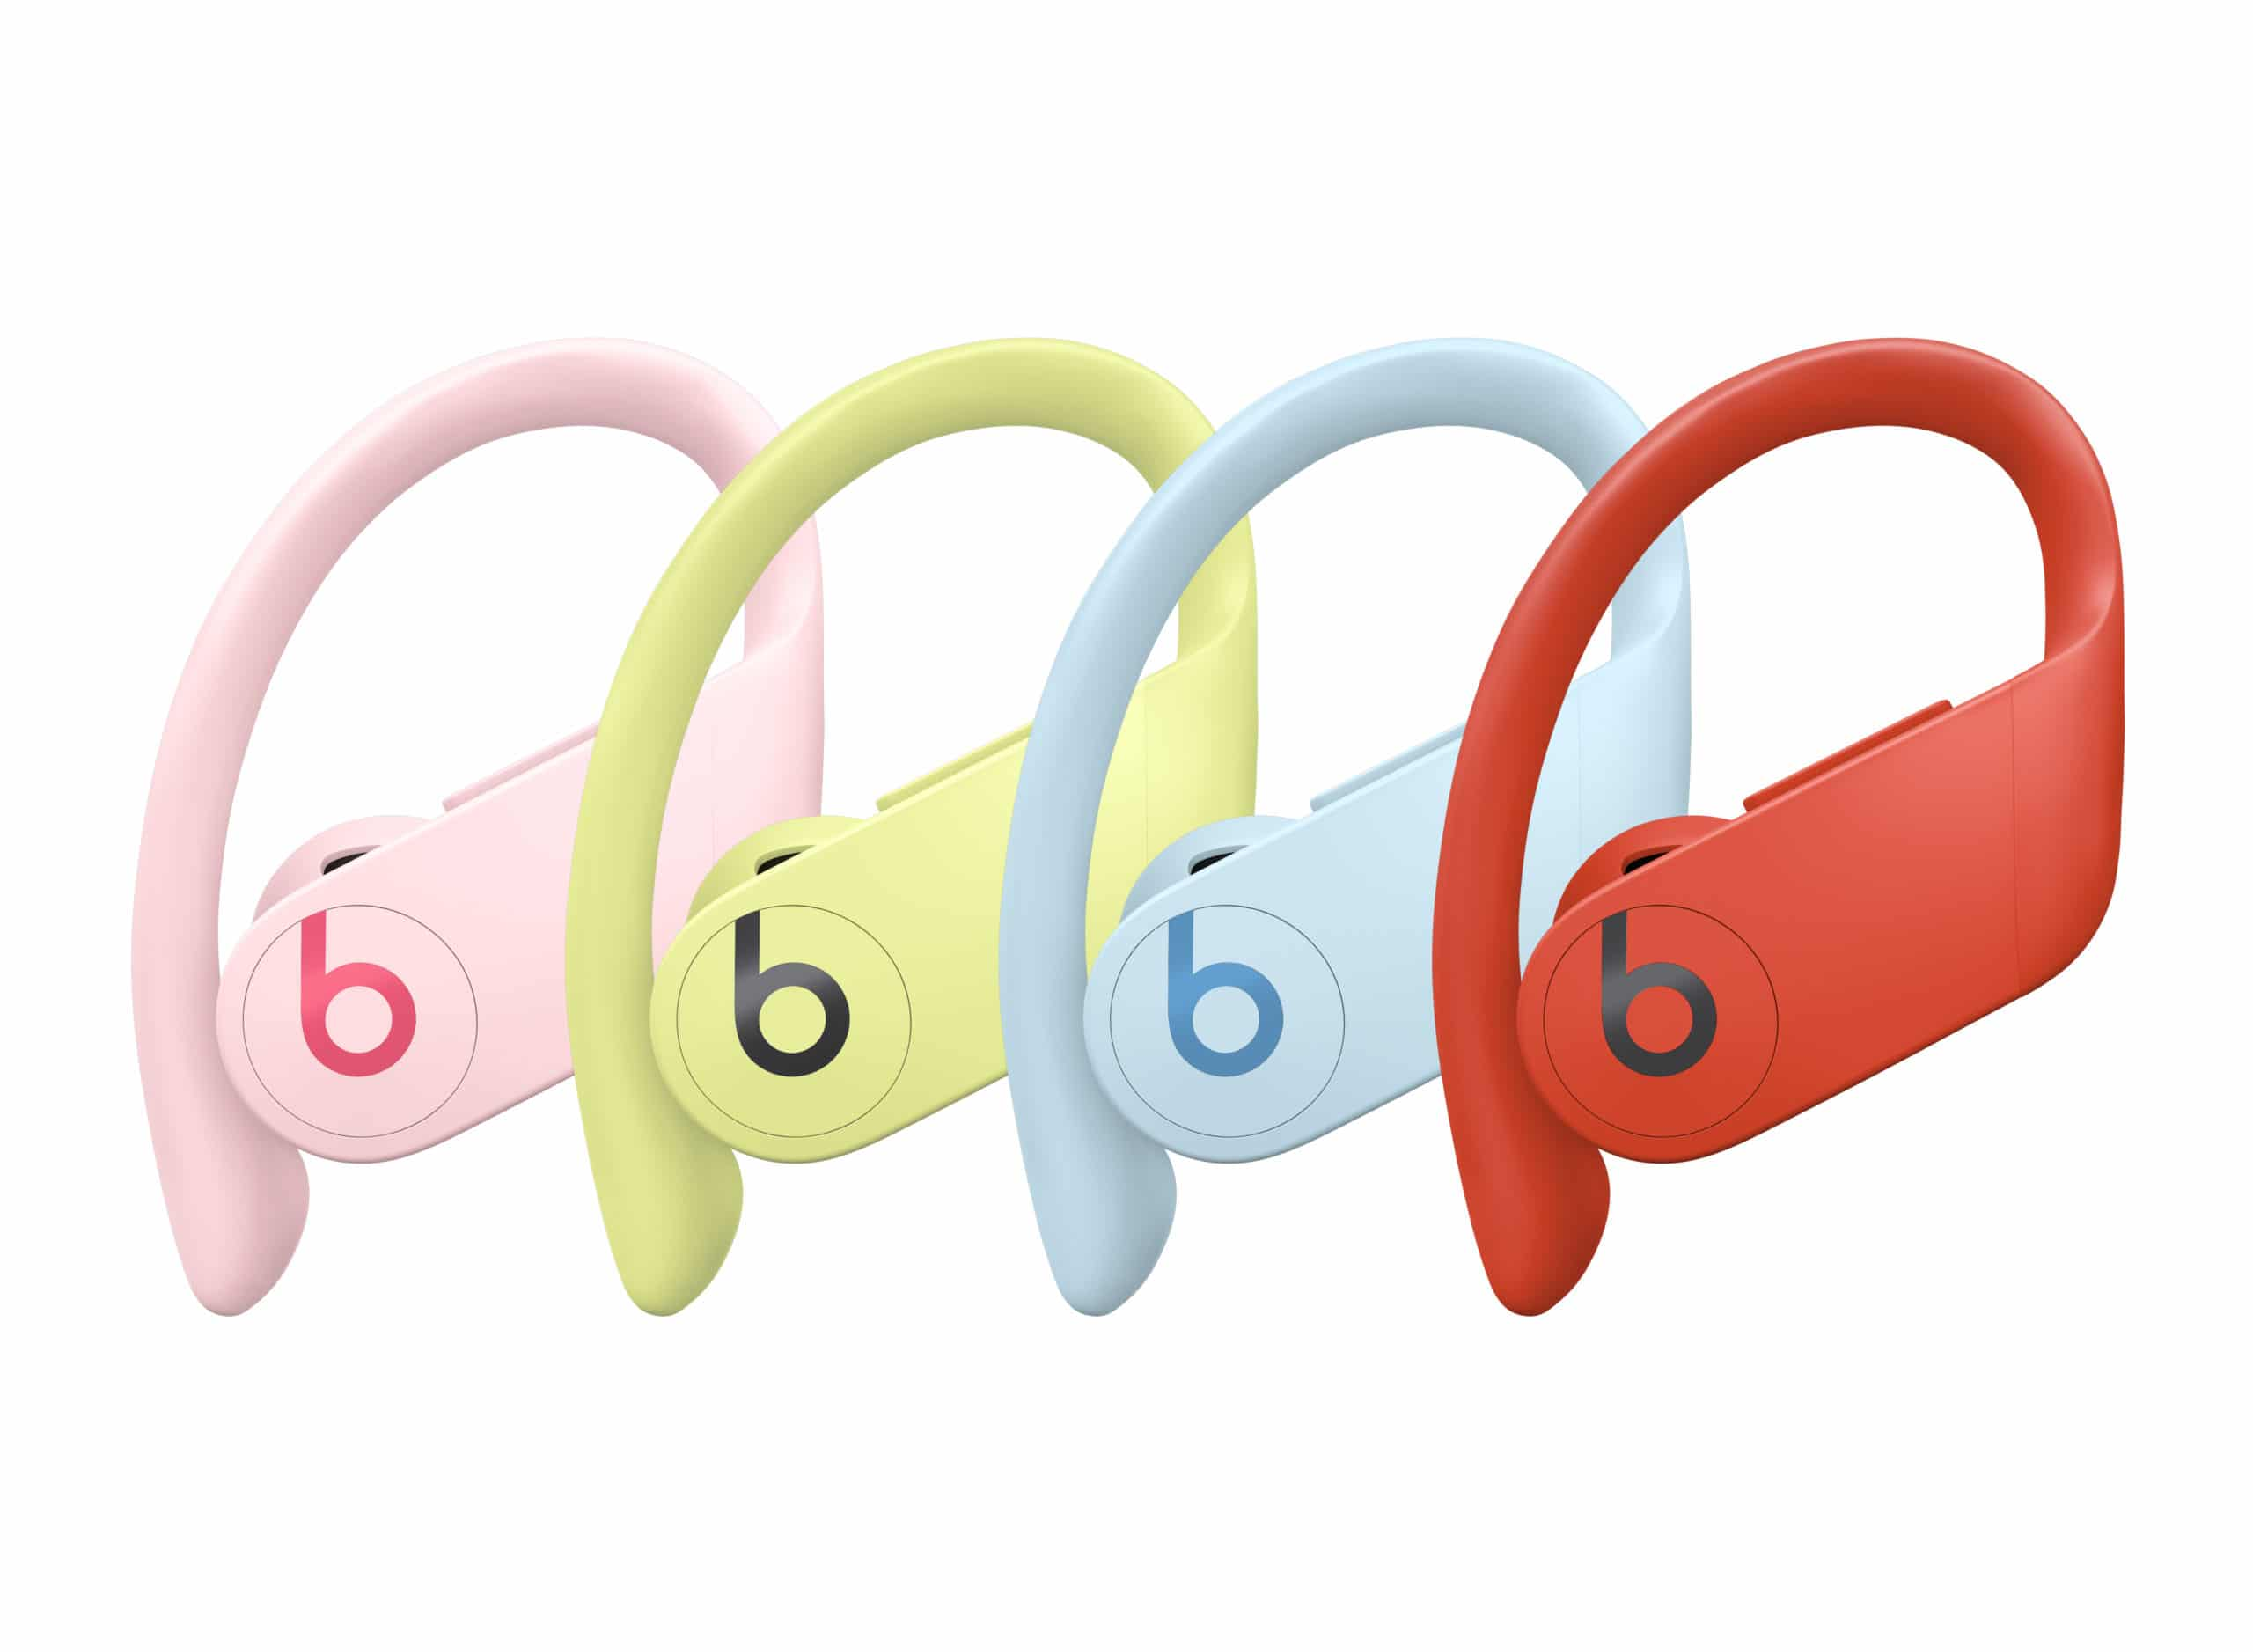 Powerbeats Pro is now available in 4 new, bright colors 13